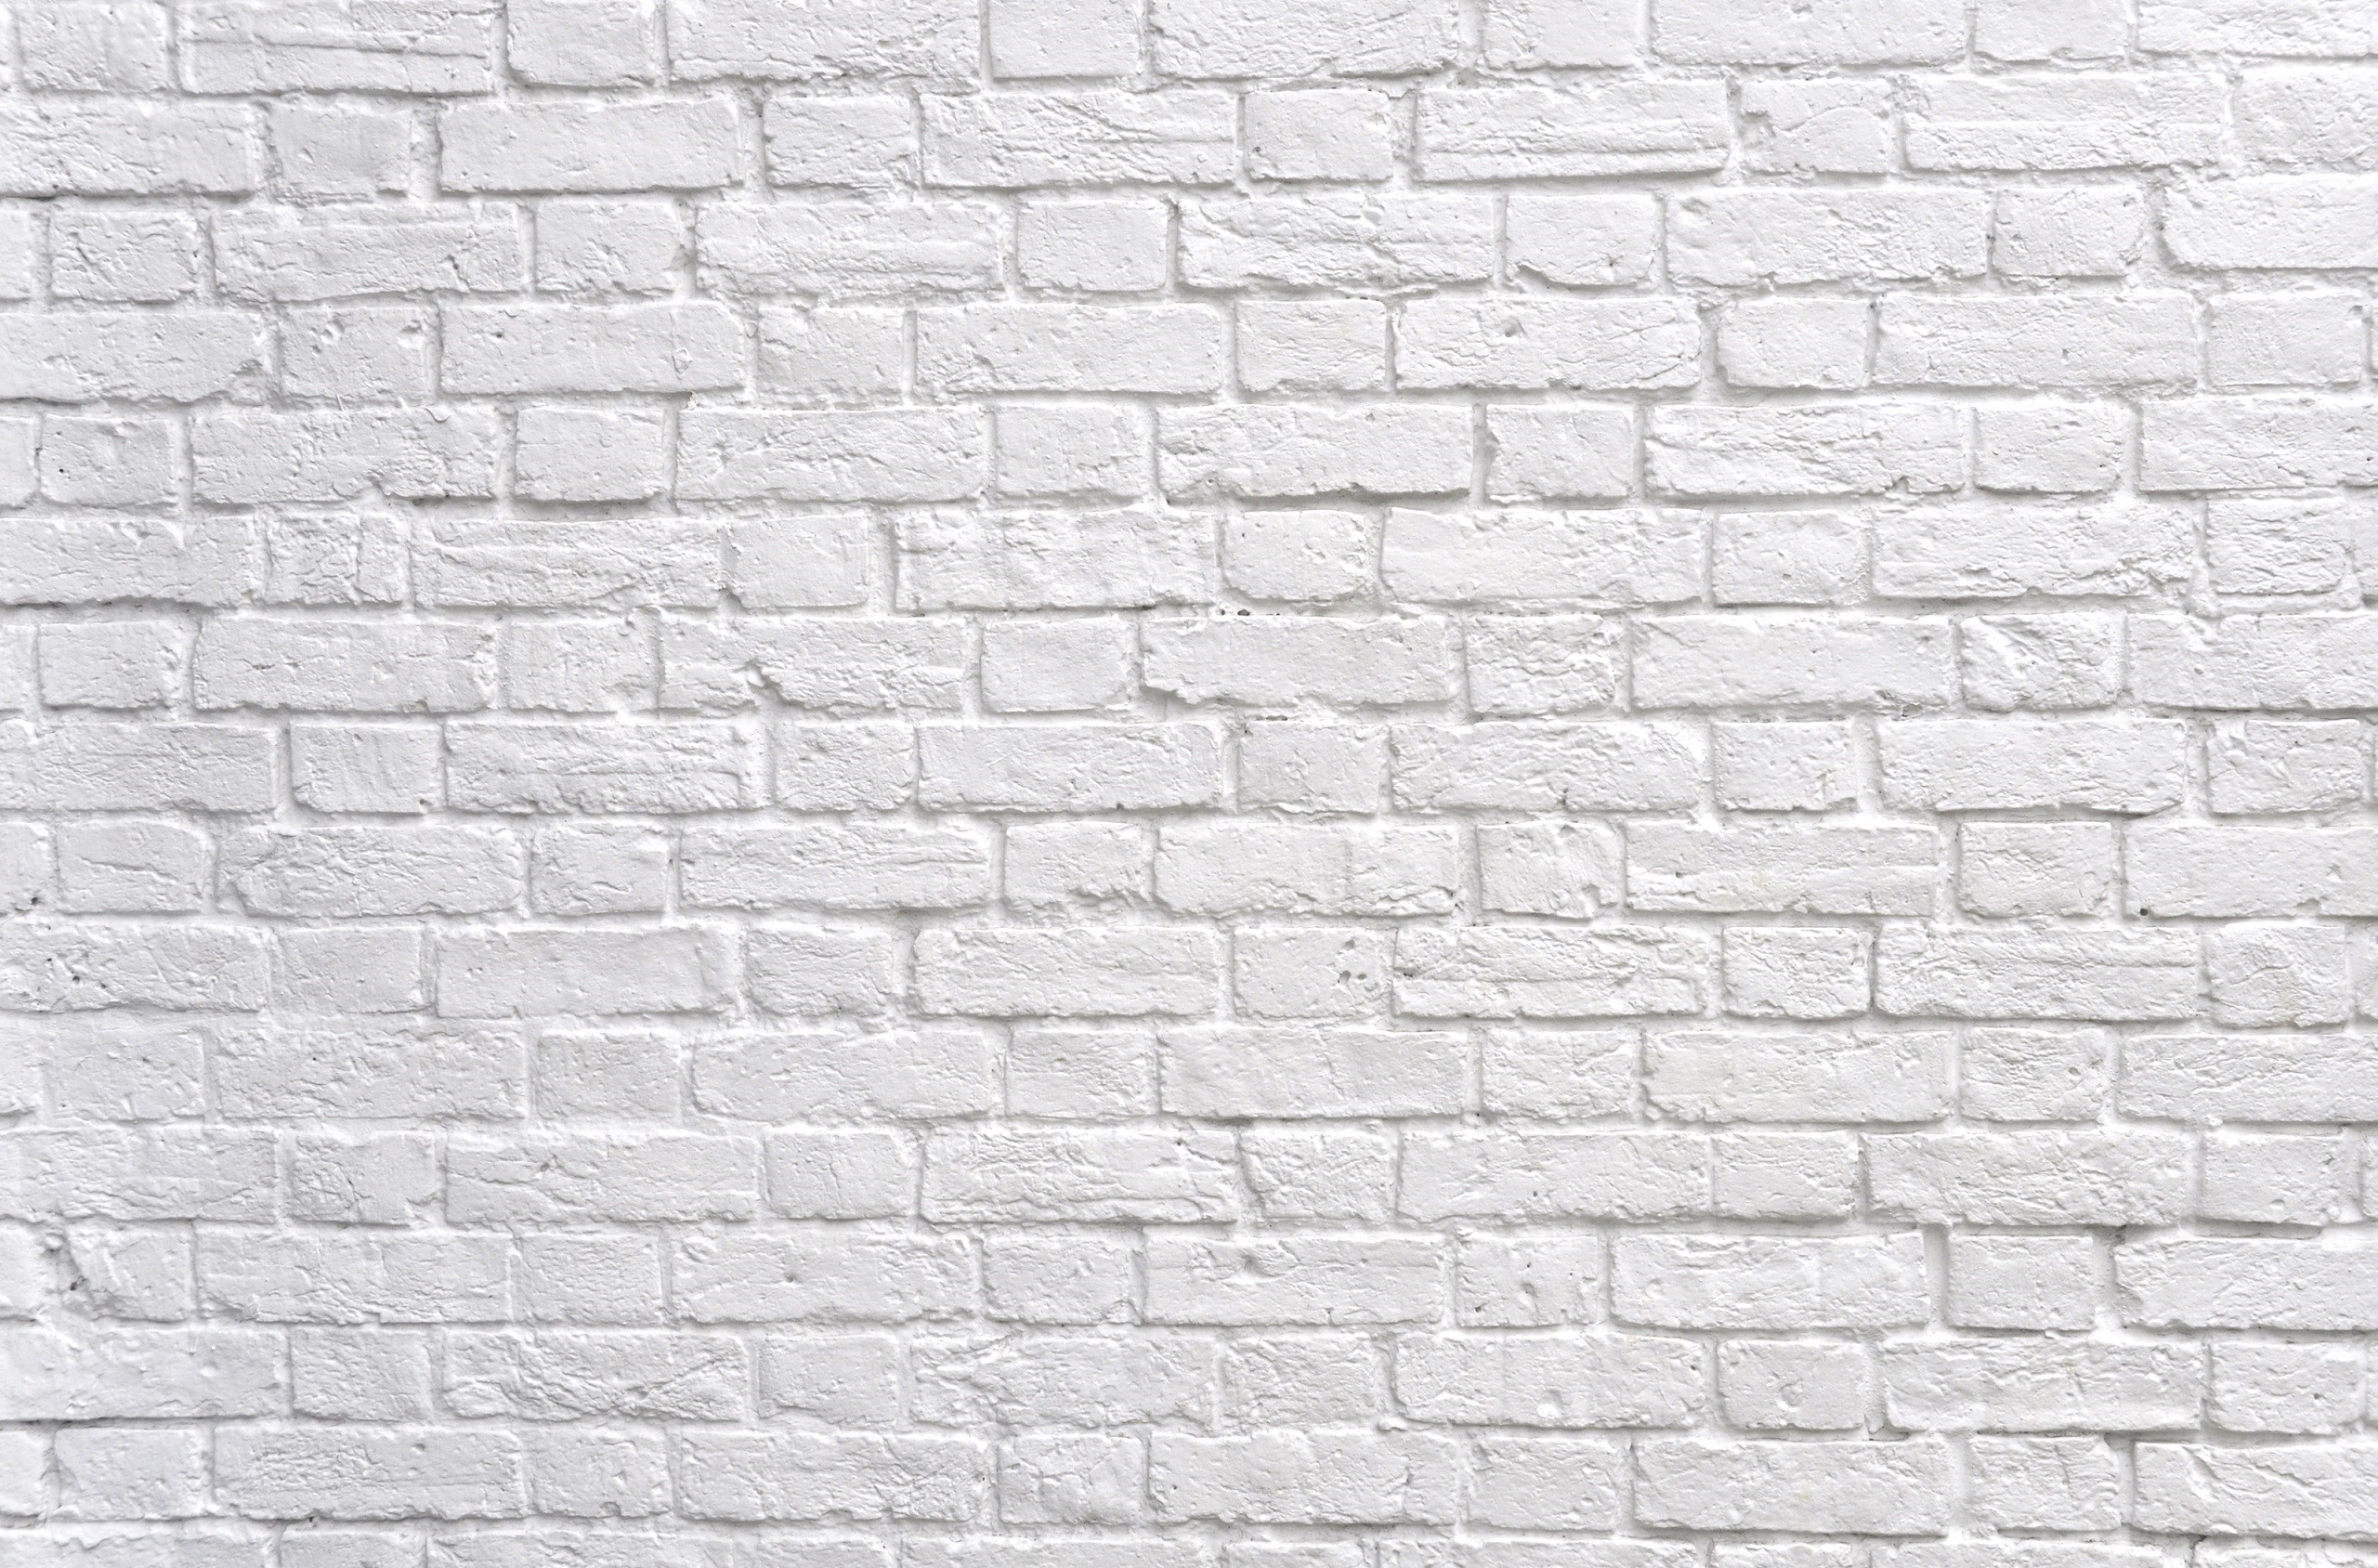 Black and white brick wall background white brick wall image decoration picture white brick wall